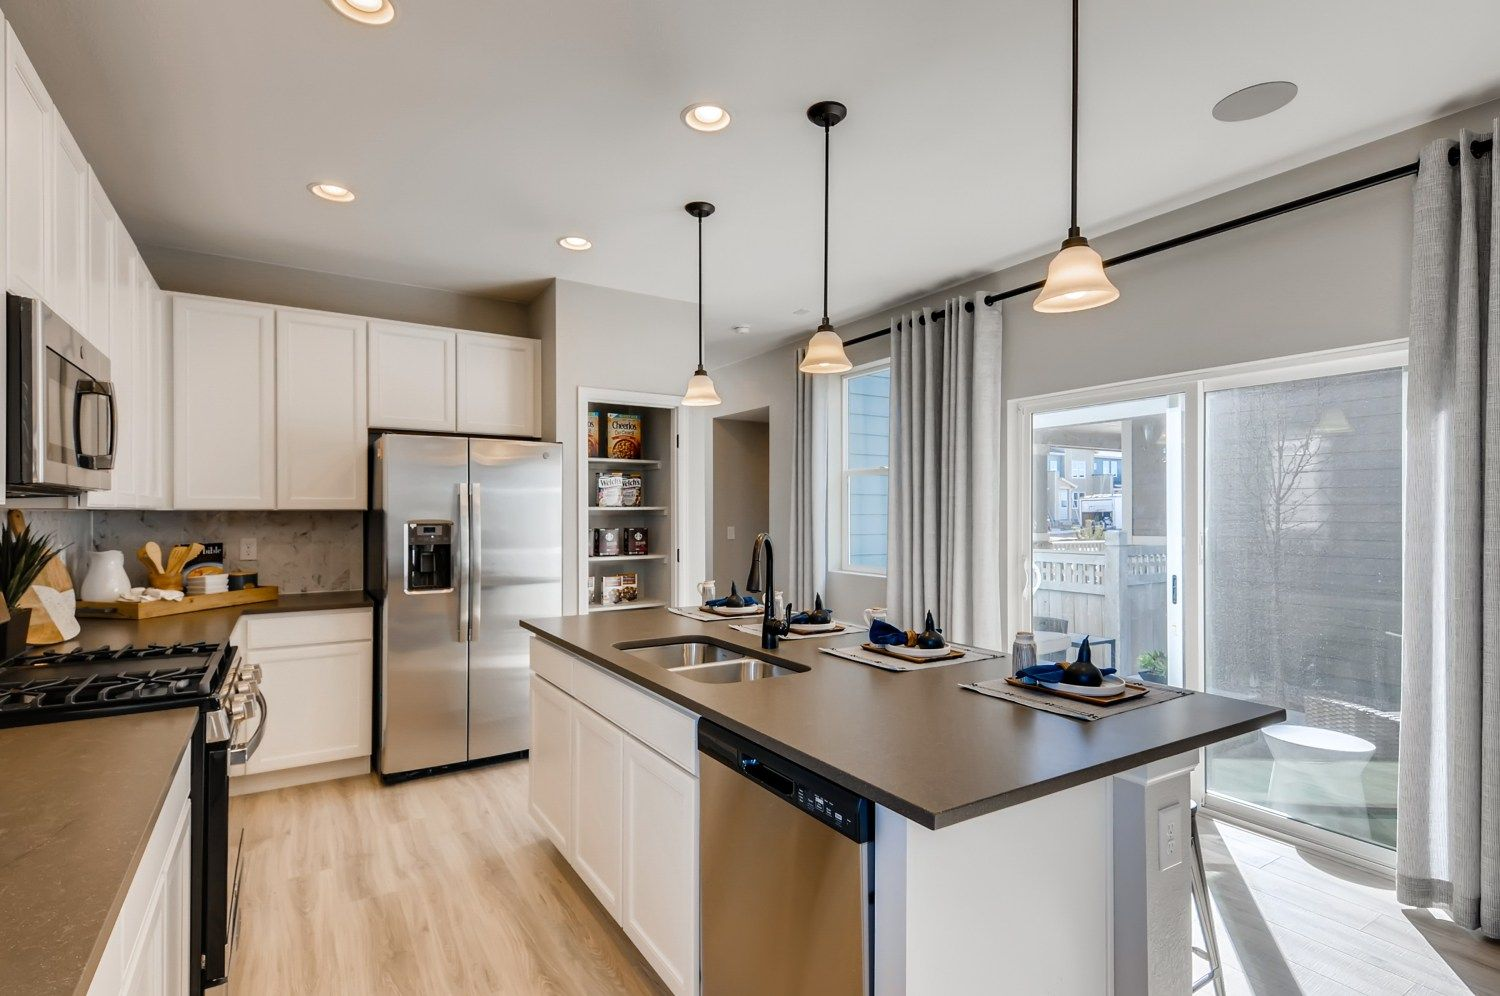 Kitchen featured in the Stella By Taylor Morrison in Denver, CO